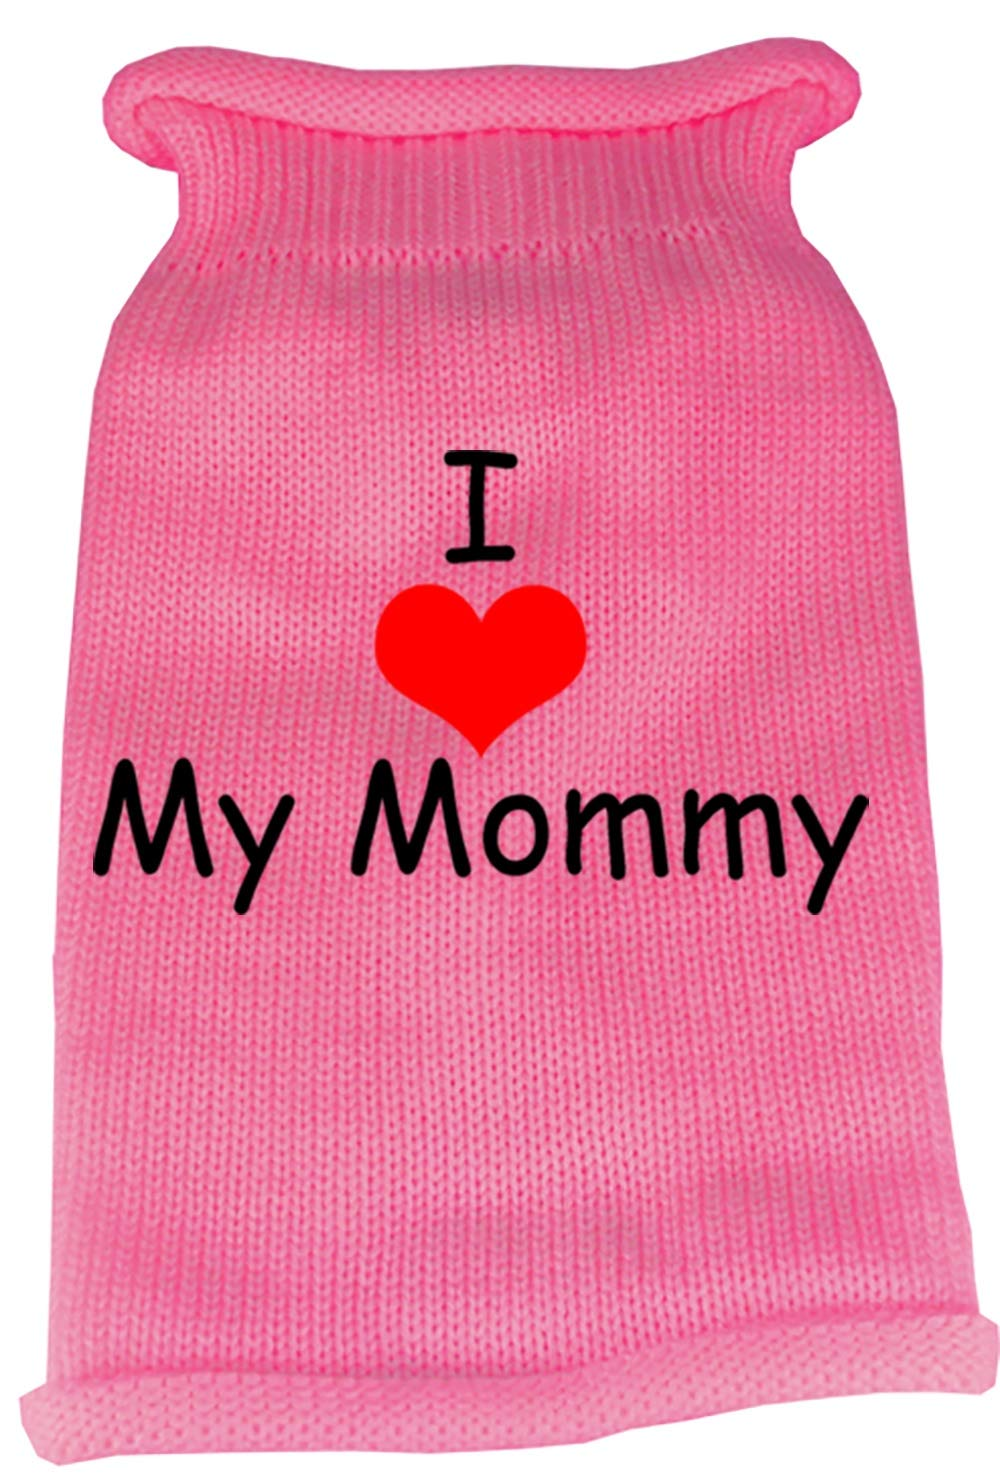 Mirage Pet Products I Heart Mommy Screen Print Knit Pet Sweater, X-Small, Pink